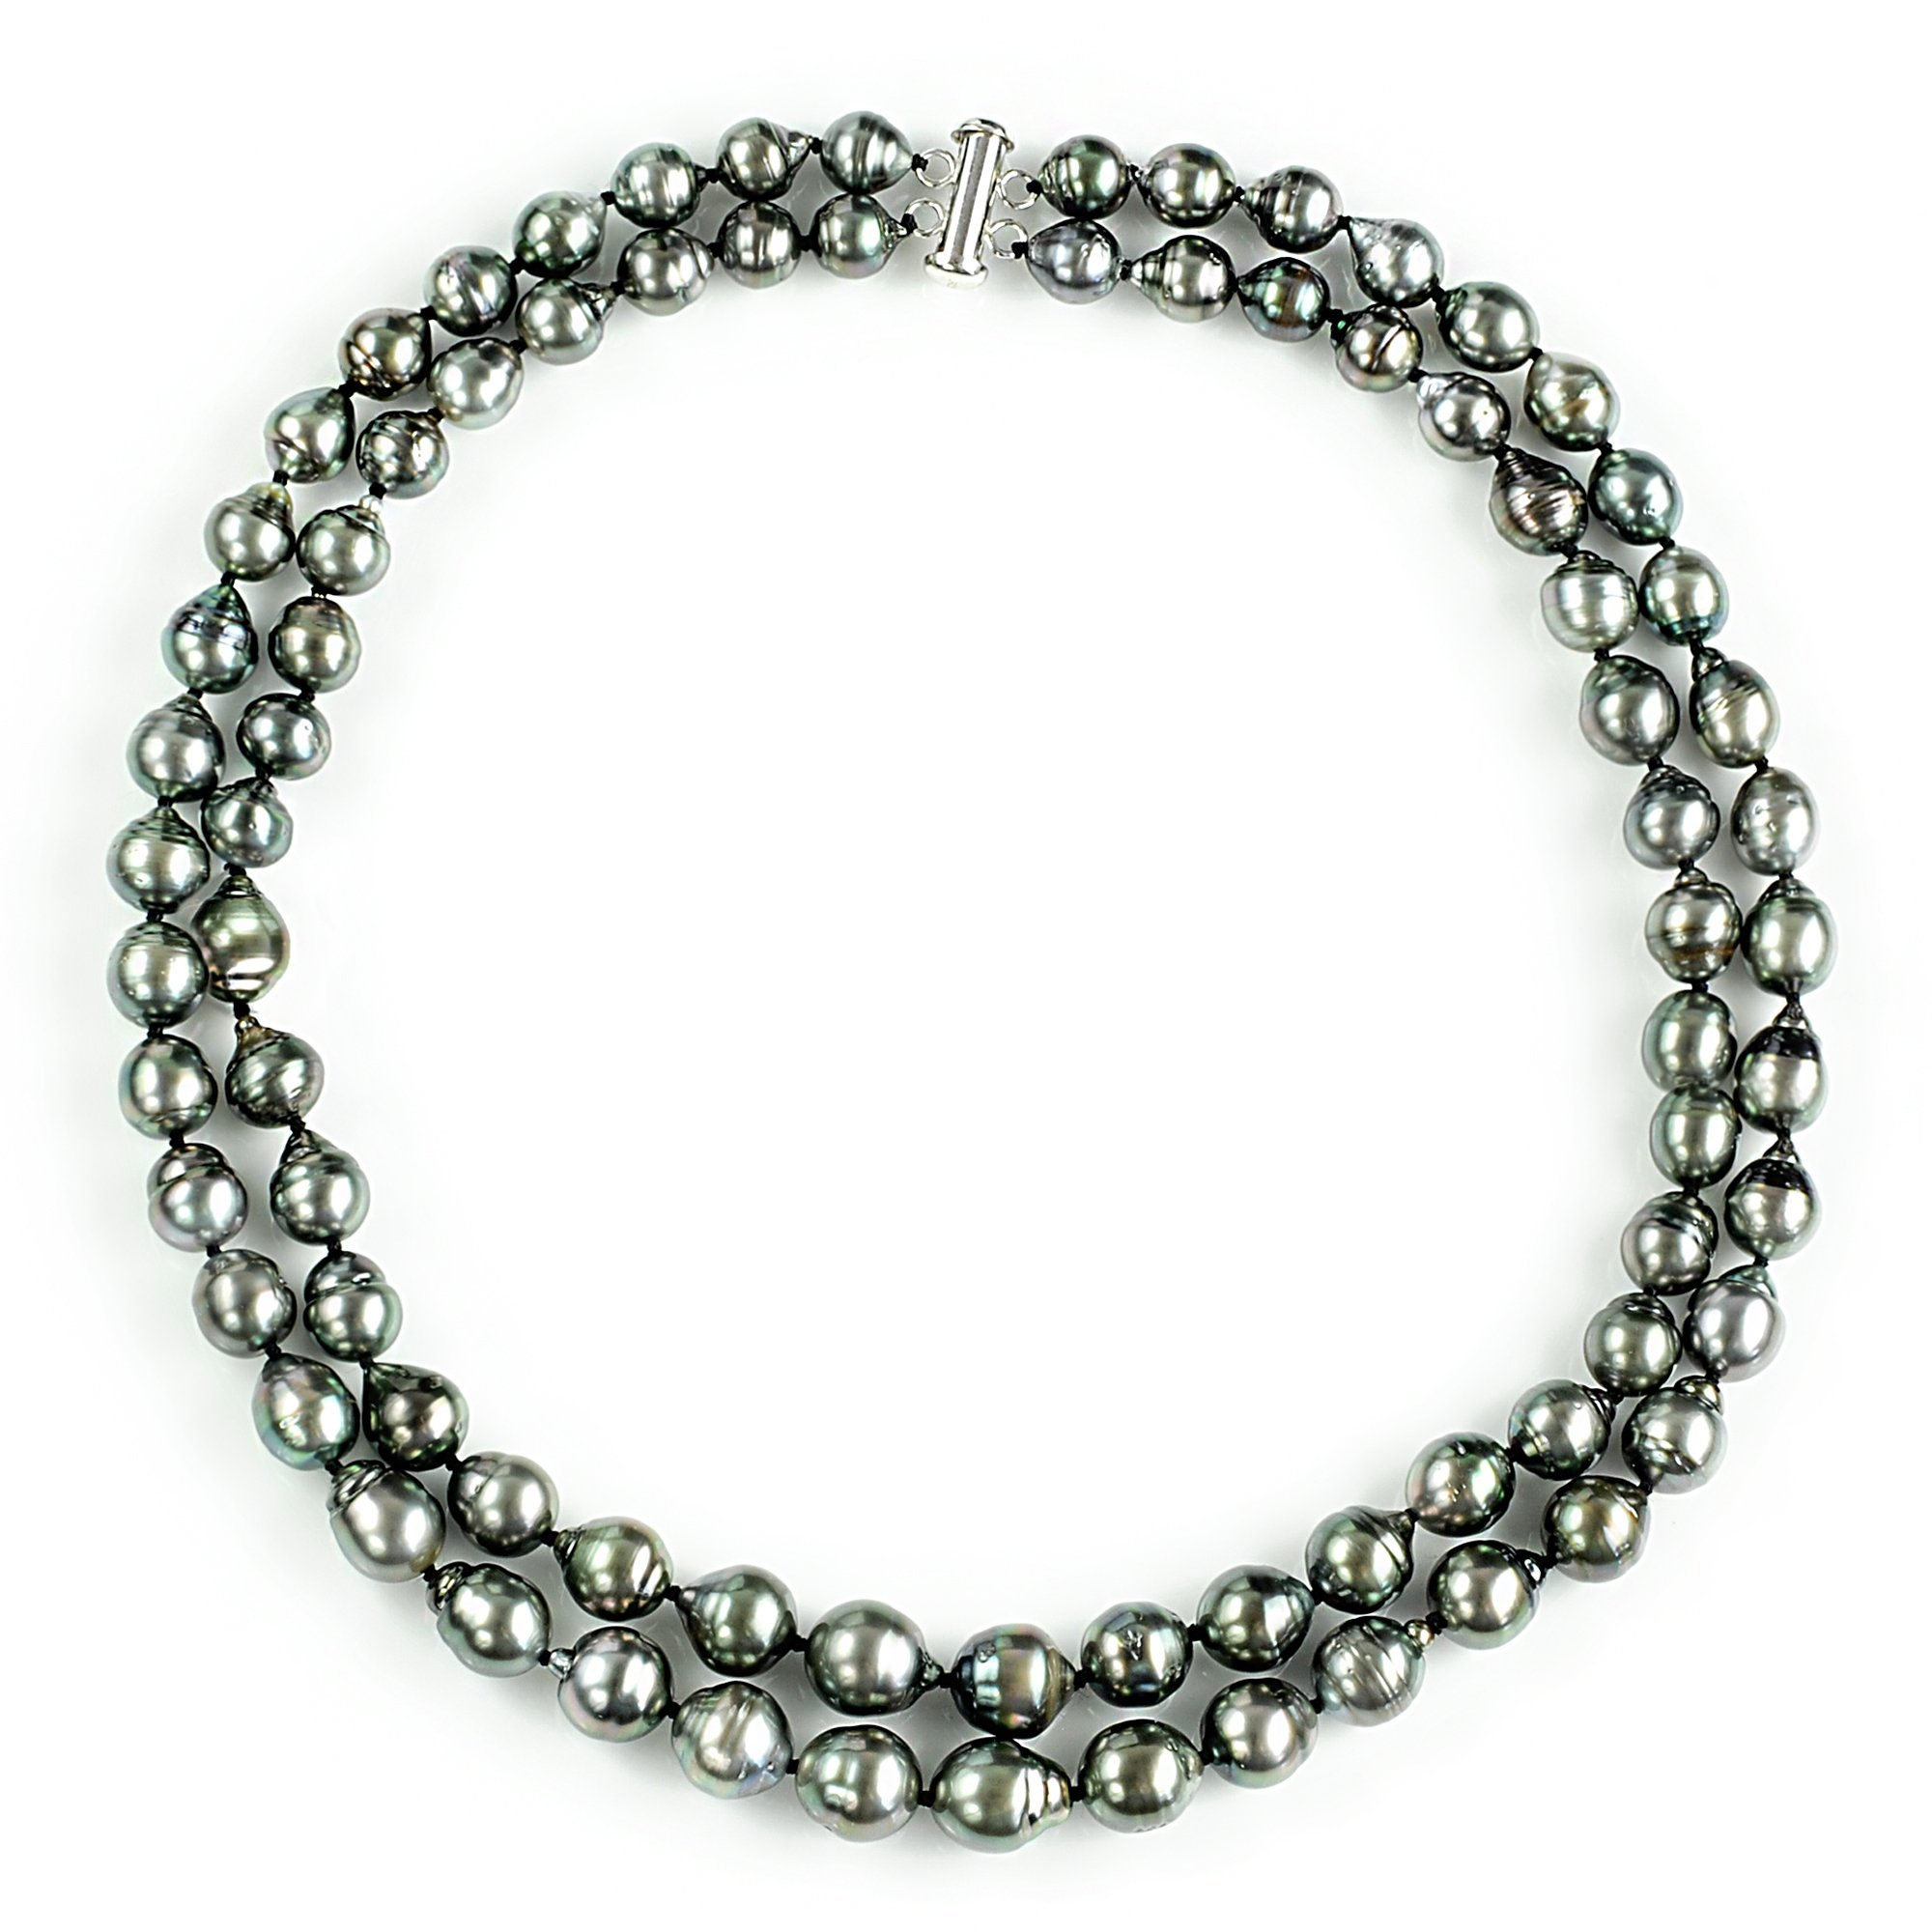 Sterling Silver 2-Rows 8-10mm Hand-picked Black Off-shape Tahitian Cultured Pearl Necklace, 17''